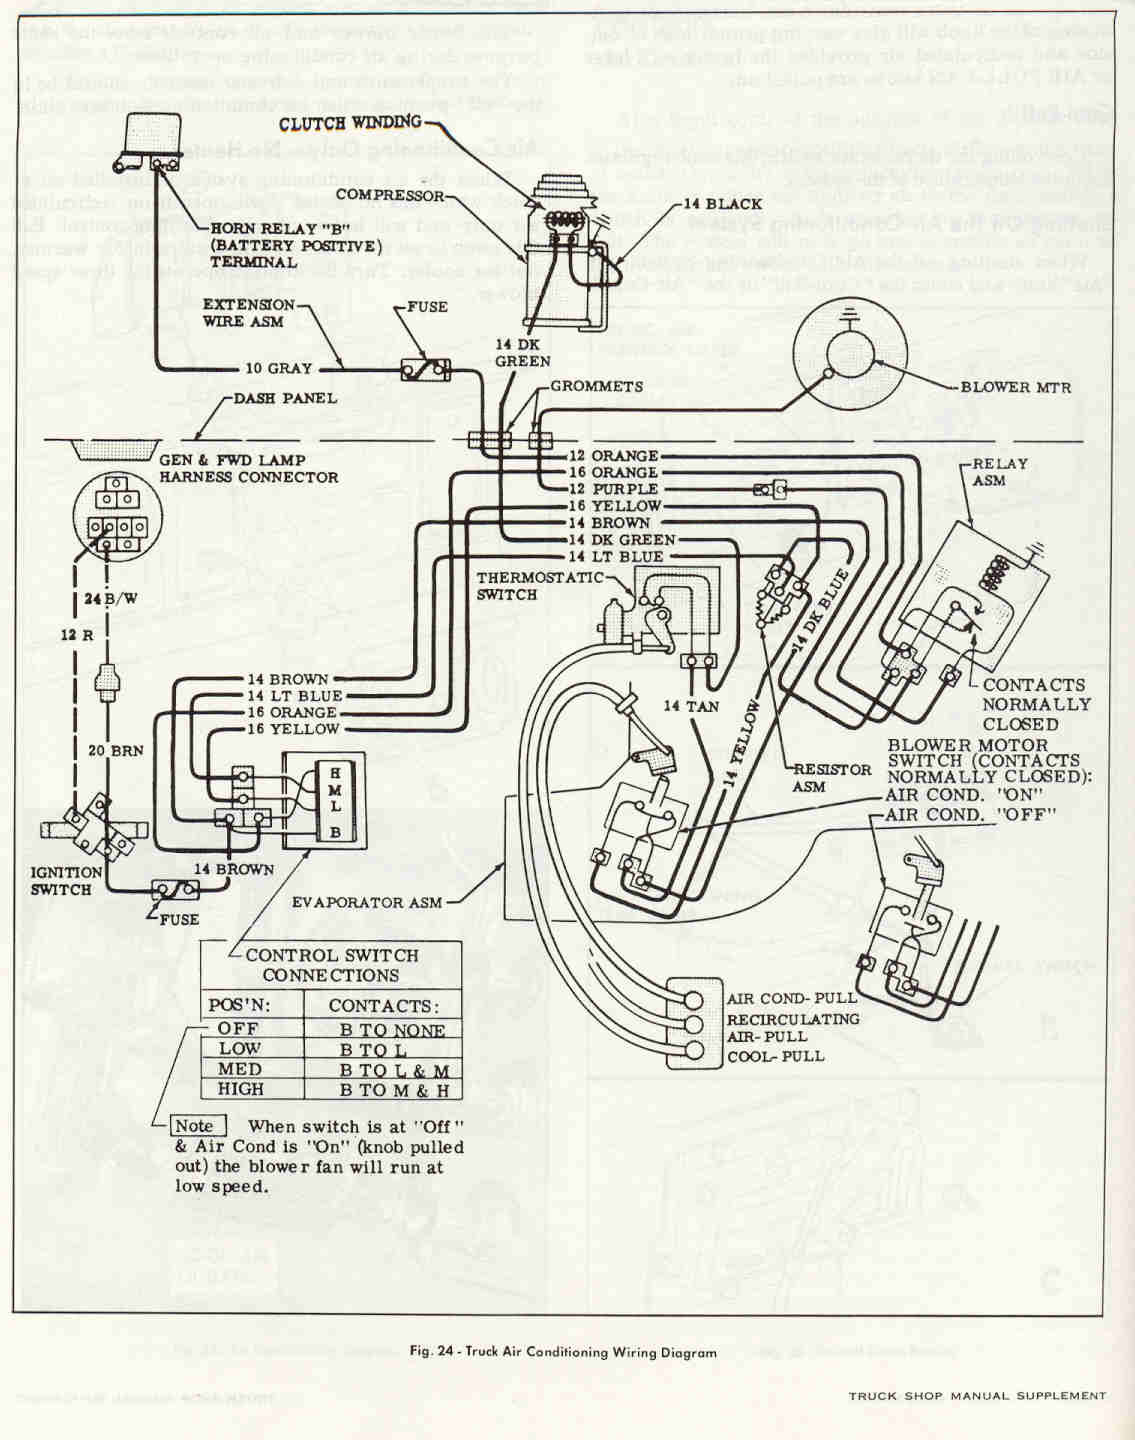 1978 Chevy C10 Wiring Diagram : 29 Wiring Diagram Images